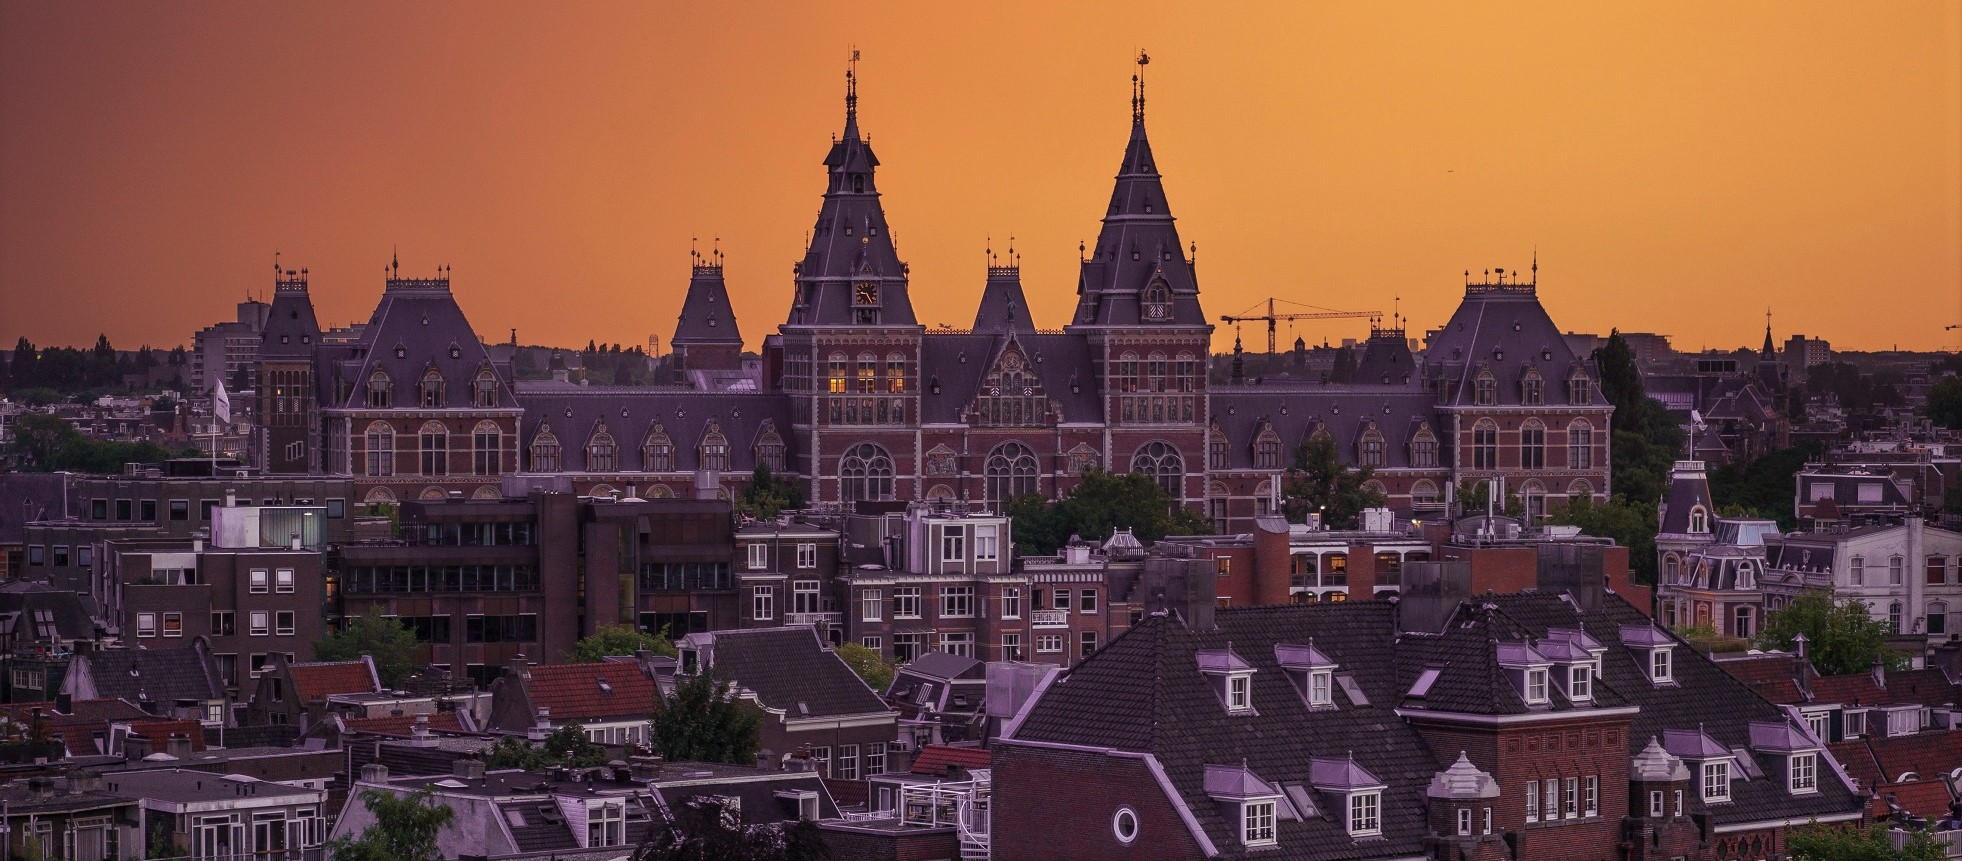 5 Cool Things in the Rijksmuseum that aren't The Night Watch